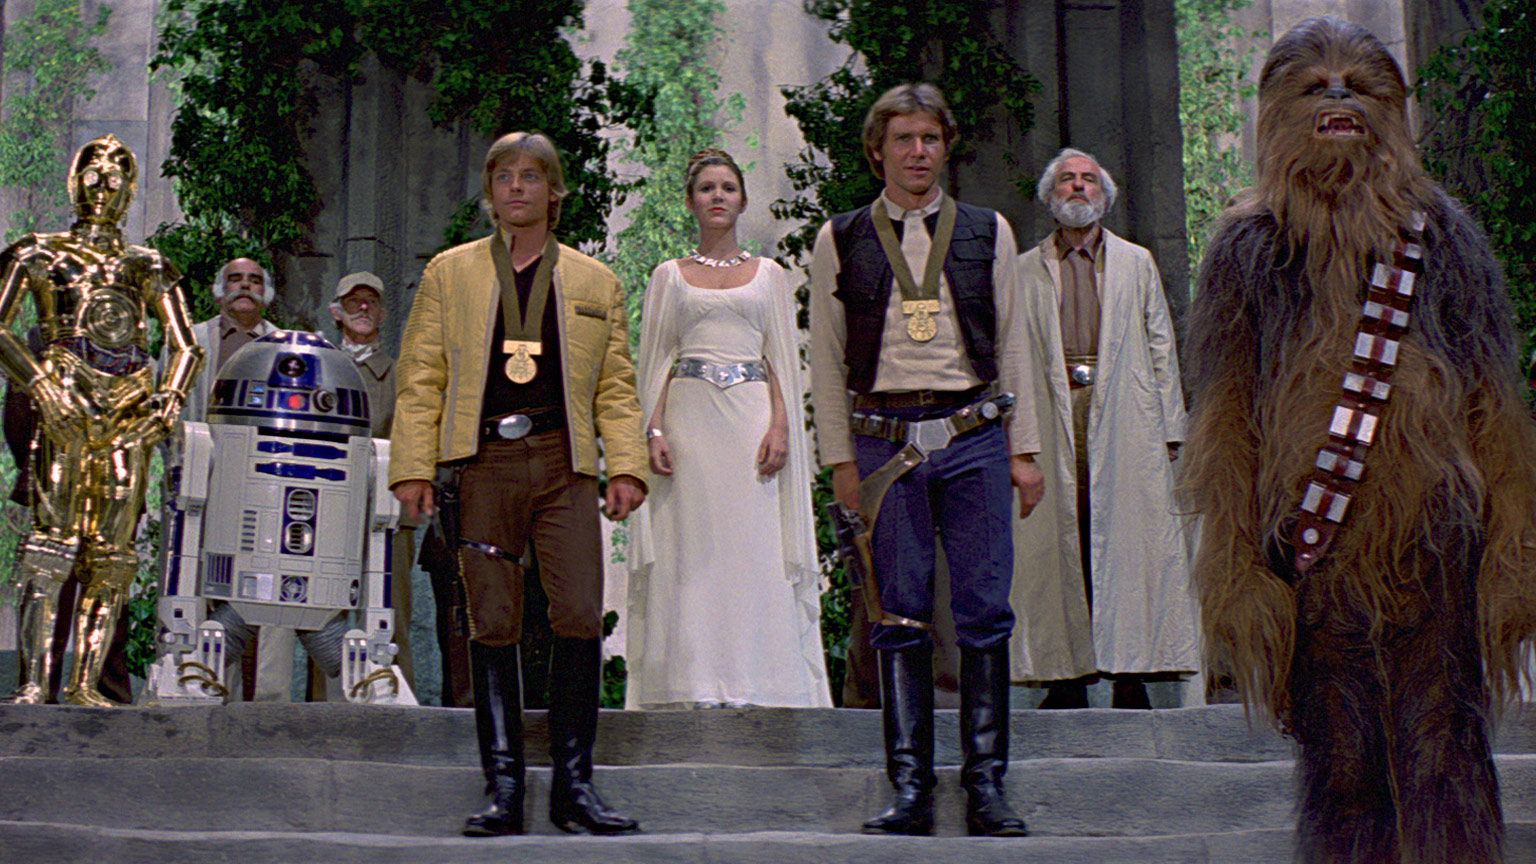 C-3PO, R2-D2, Luke, Leia, Han, and Chewie at the medal ceremony.